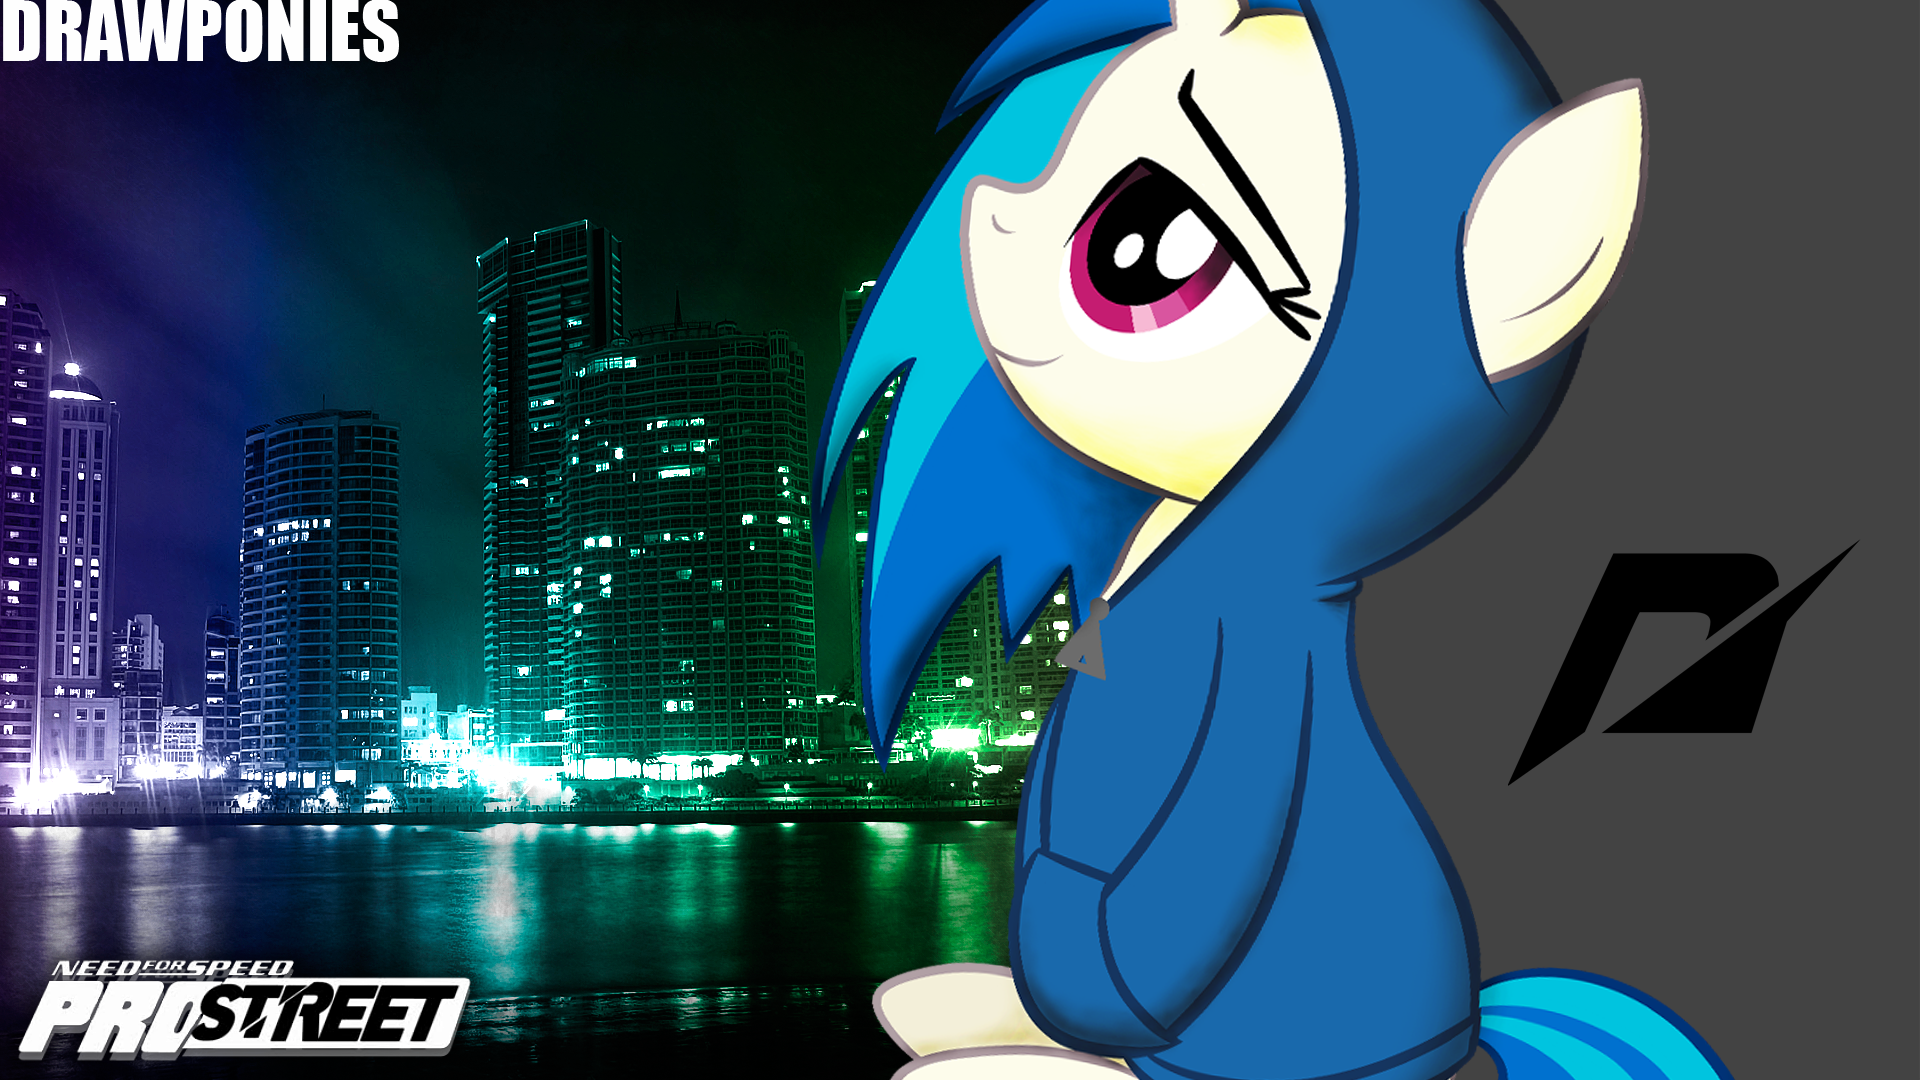 Need For Speed Vinyl Scratch Night By Vaux111 On Deviantart